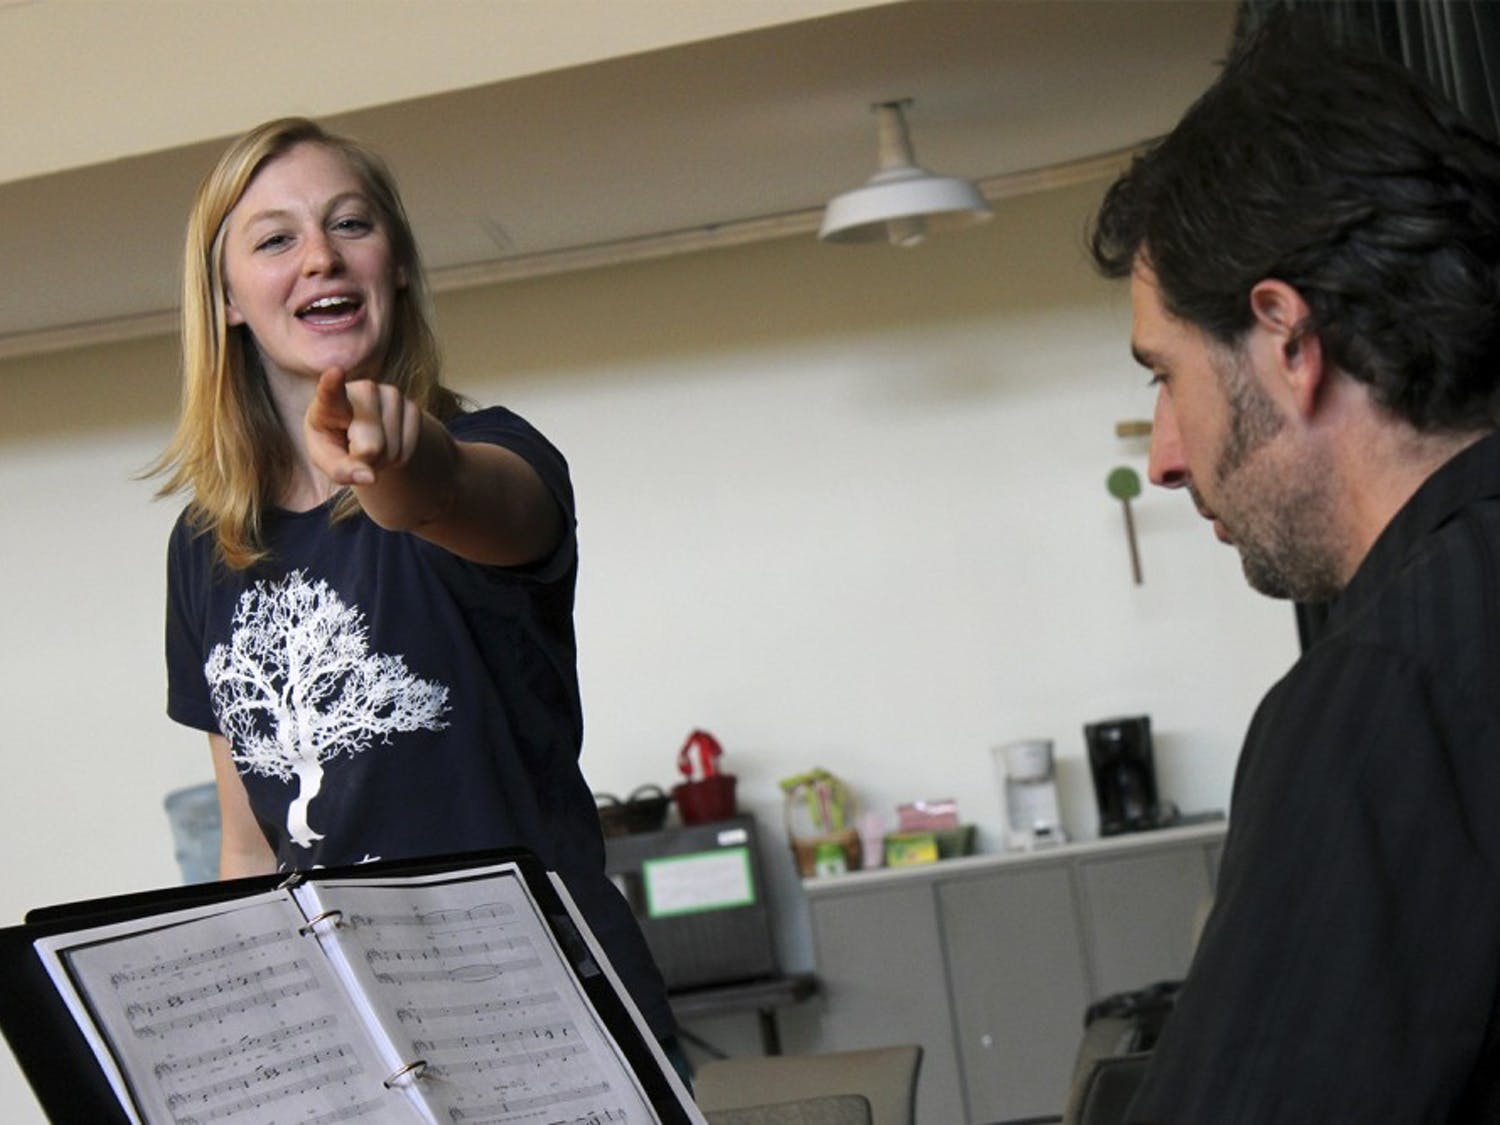 Director and UNC MFA student Arielle Yoder rehearses a Broadway number with music director Jesse Kapsha on keys.Photo courtesy of Wagon Wheel Arts.